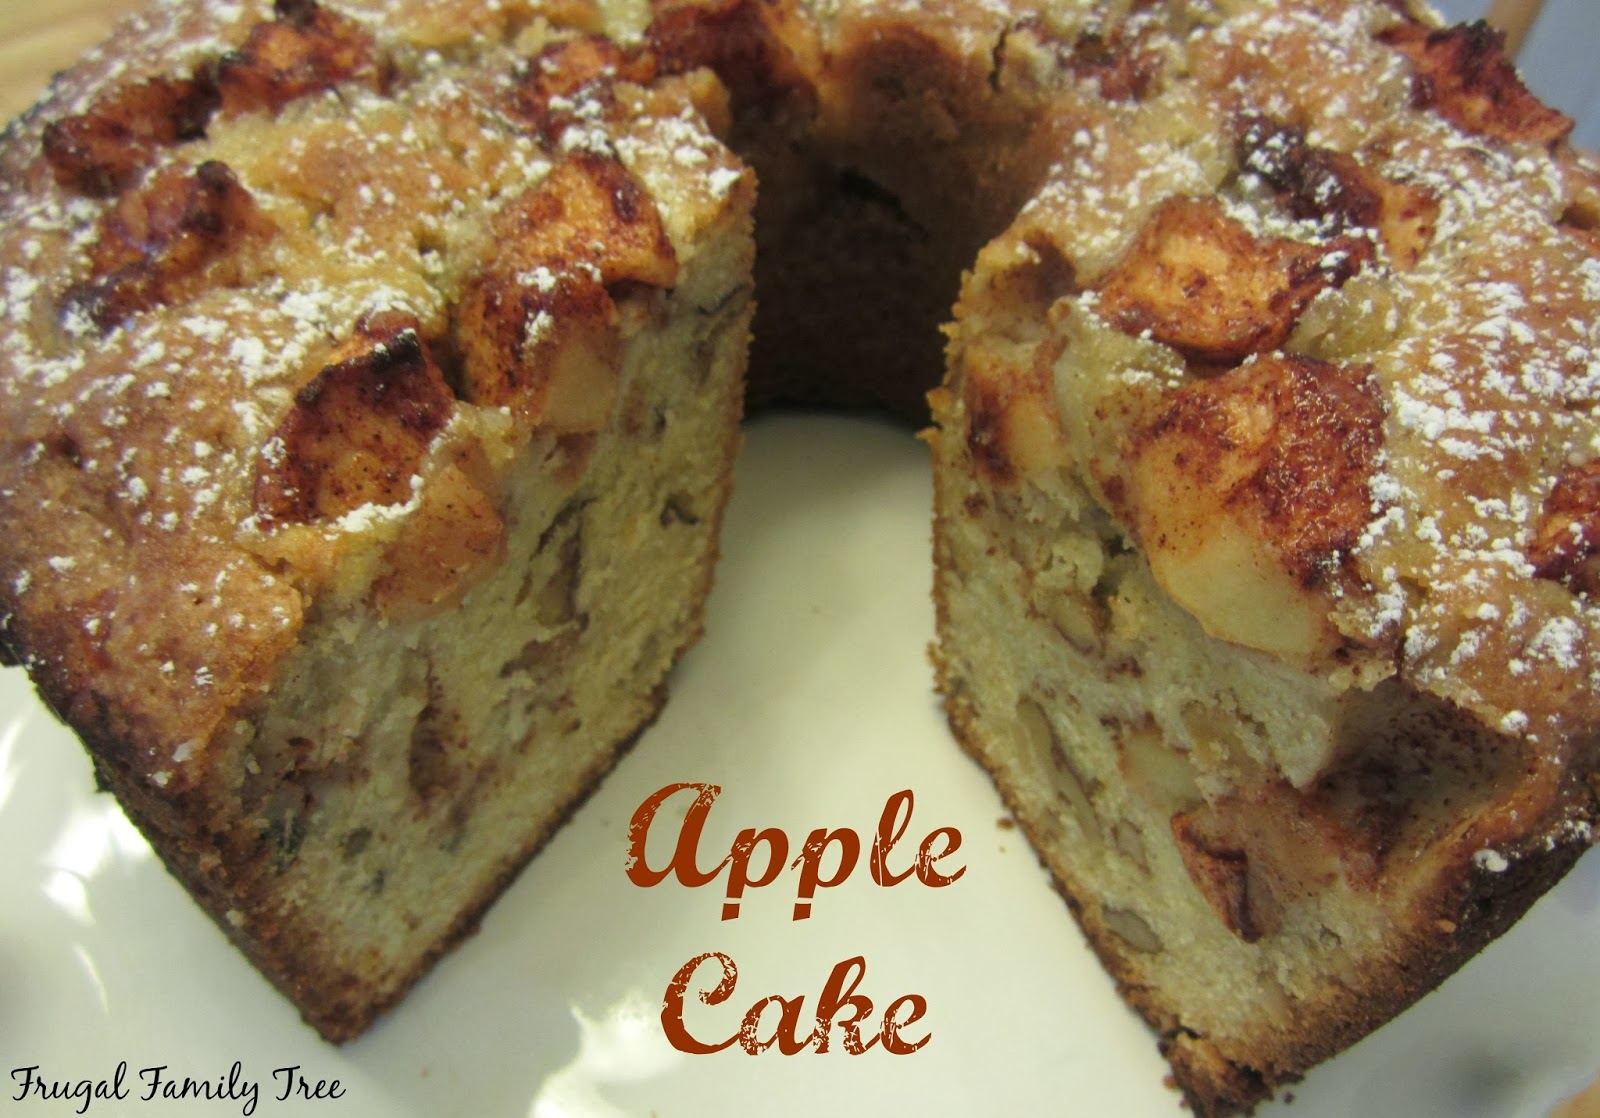 My Favorite Apple Cake Recipe From Smitten Kitchen Frugal Family Tree